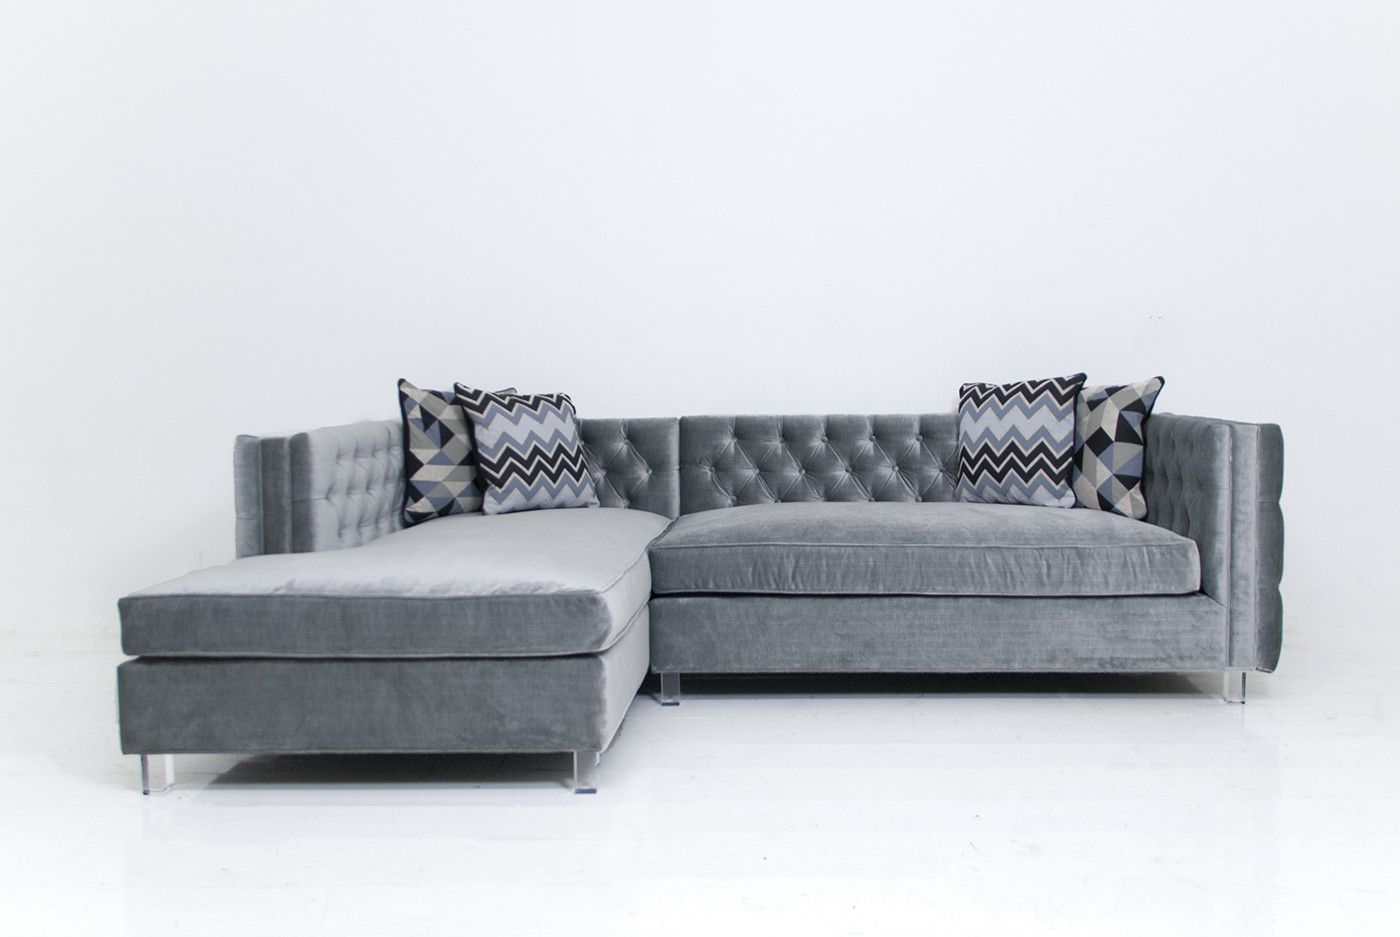 New Deep Inside Out Sectional In Elephant Grey Velvet Cushions